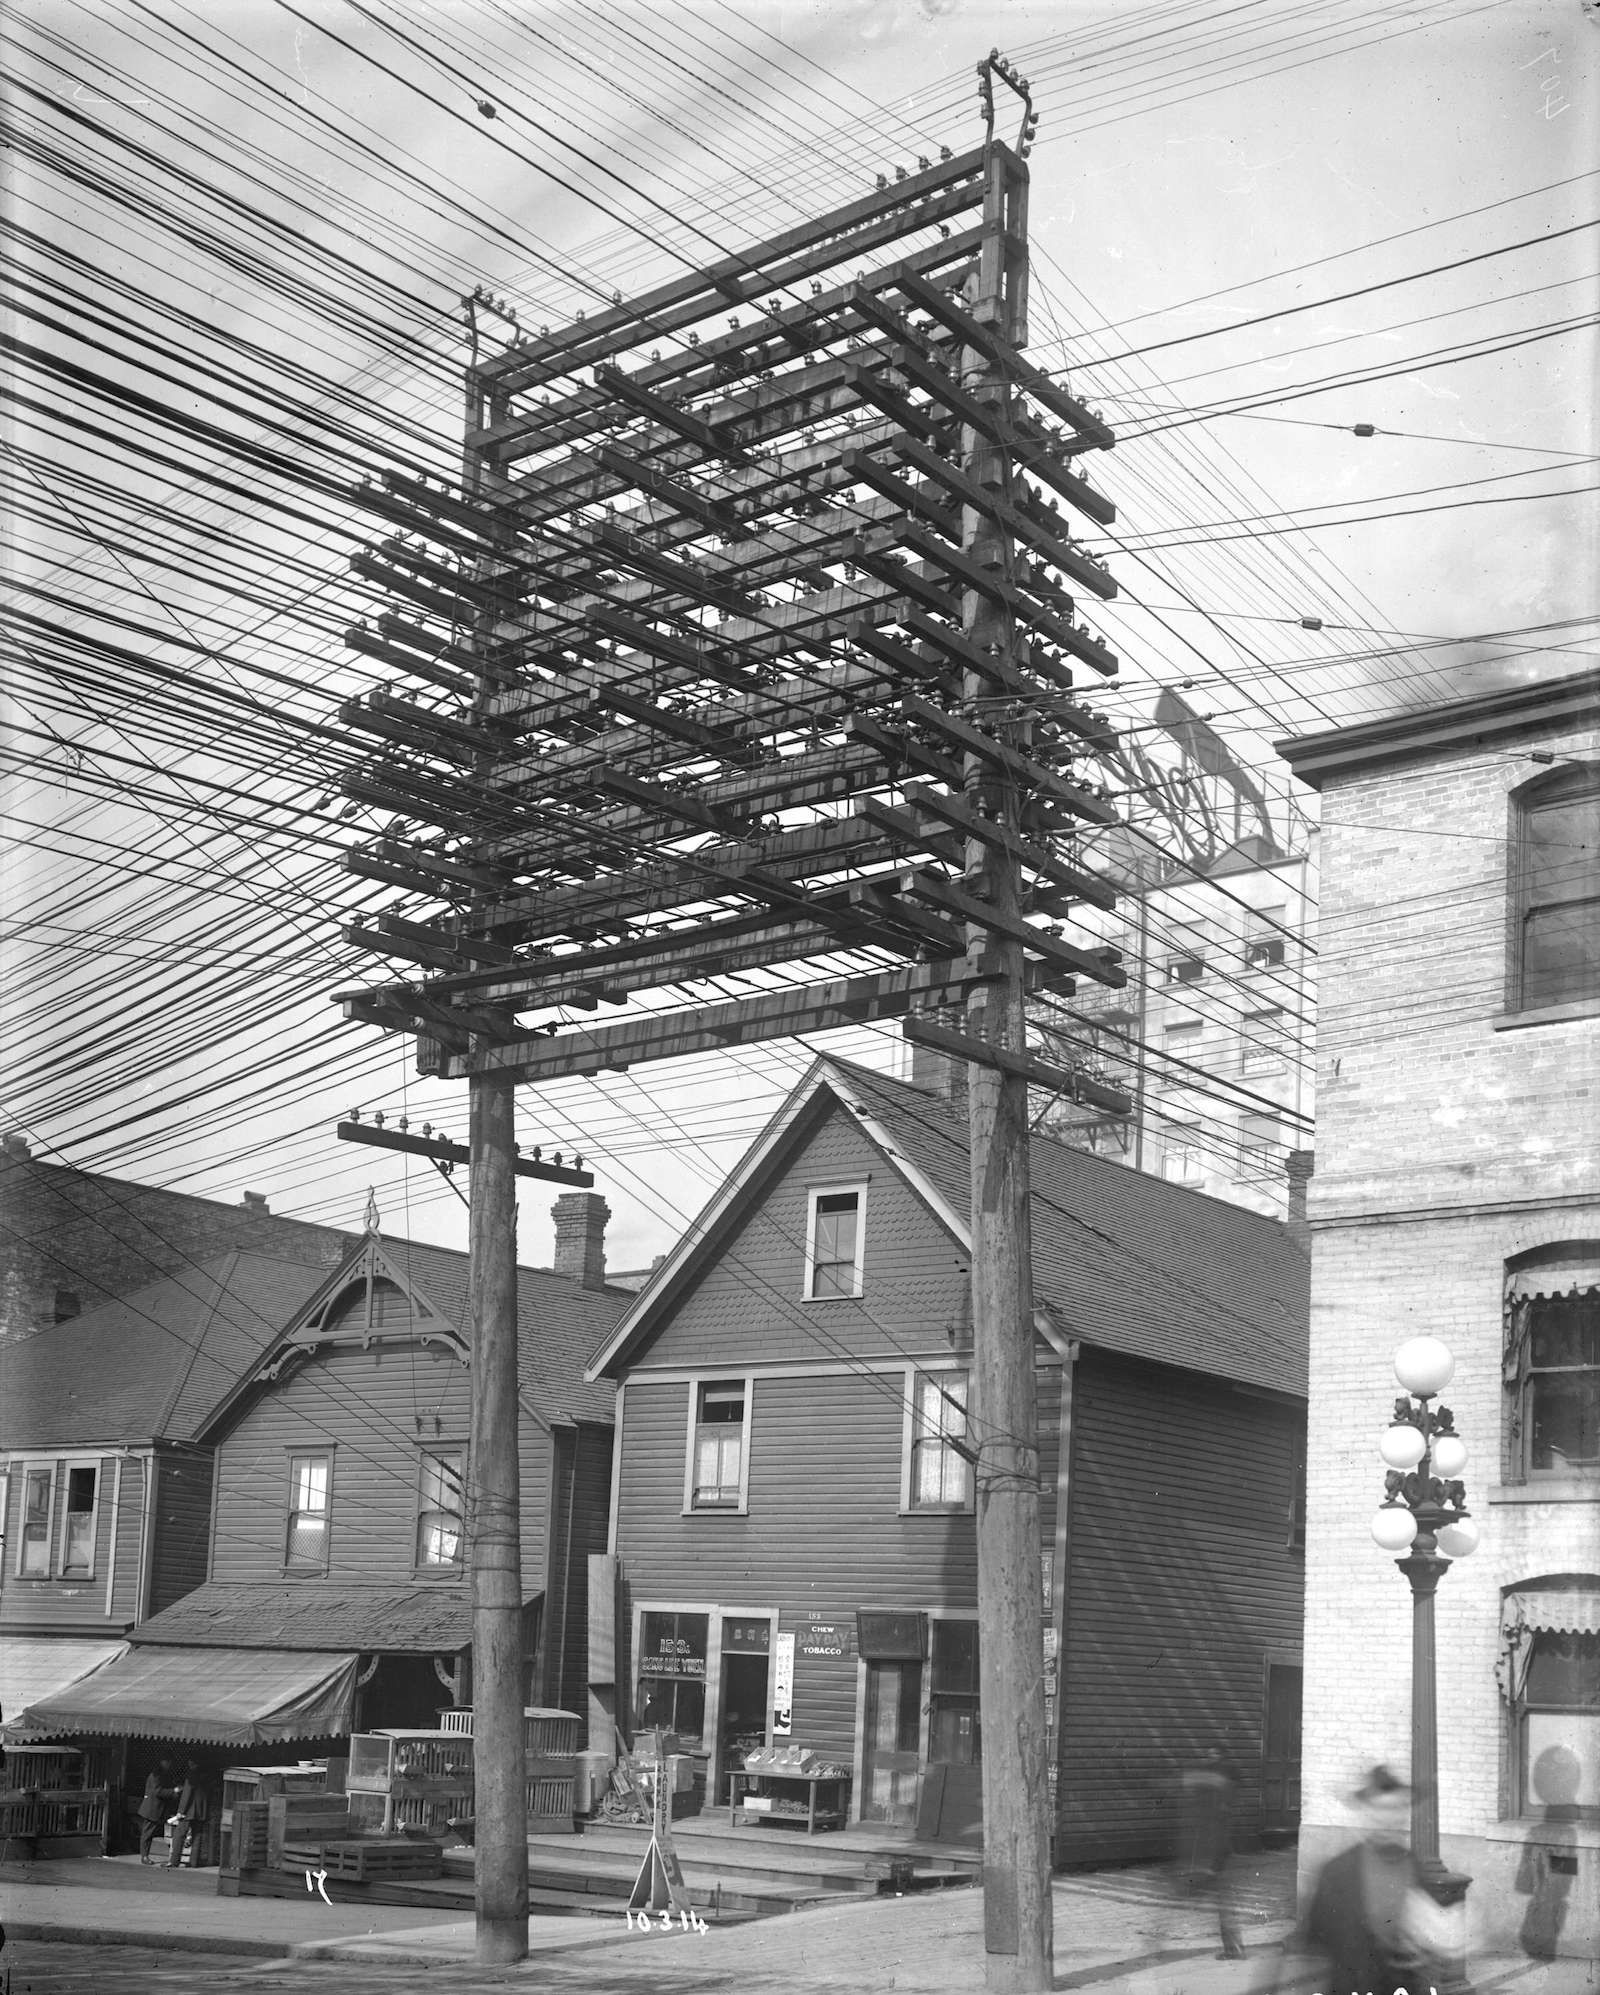 photos from the days when thousands of cables crowded the skies Residential Wiring History Residential Wiring History #51 history of residential wiring